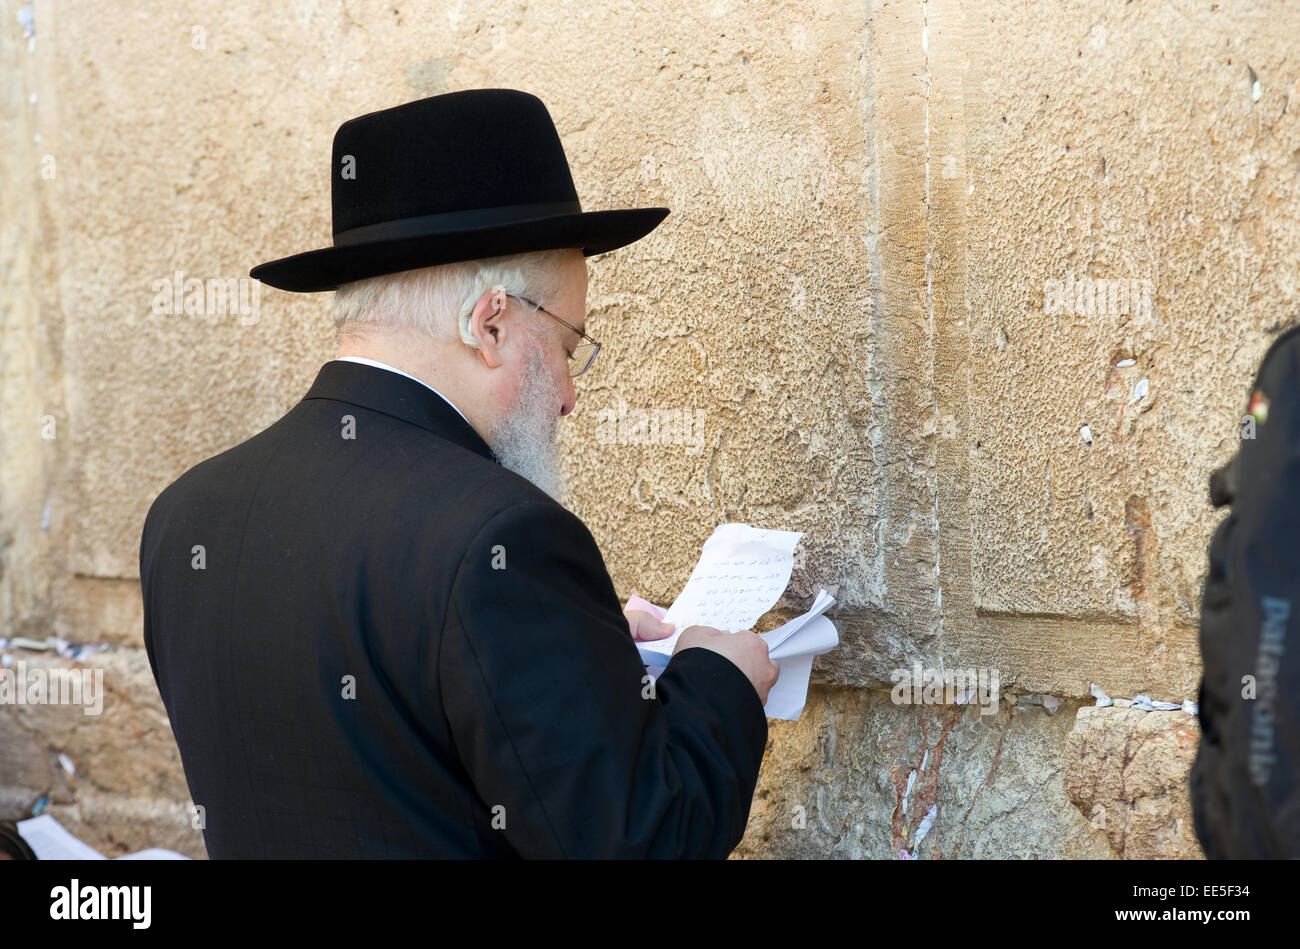 A jewish man is reading from a paper in front of the western wall in the old city of Jerusalem - Stock Image